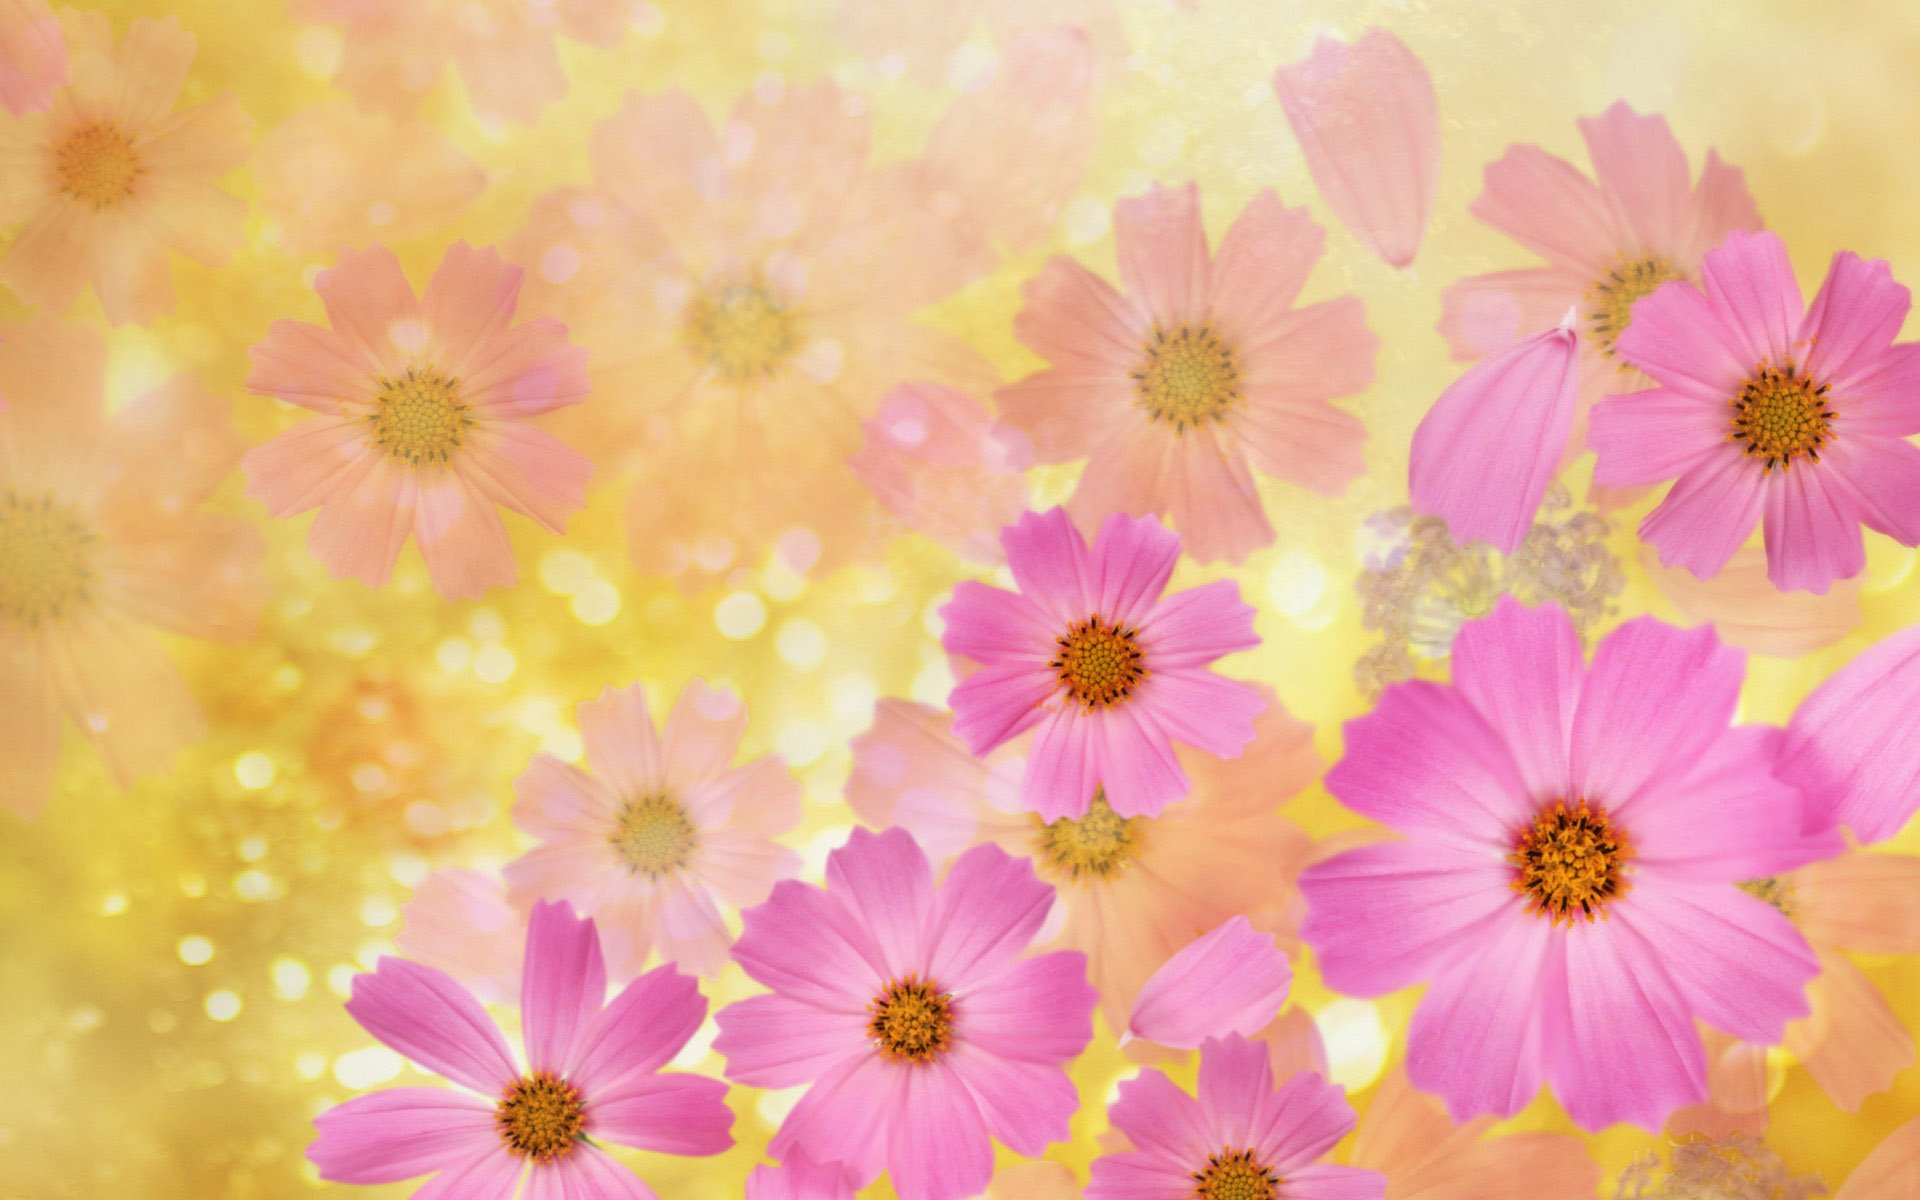 Cosmos flowers Wallpaper High Quality Wallpapers 1920x1200